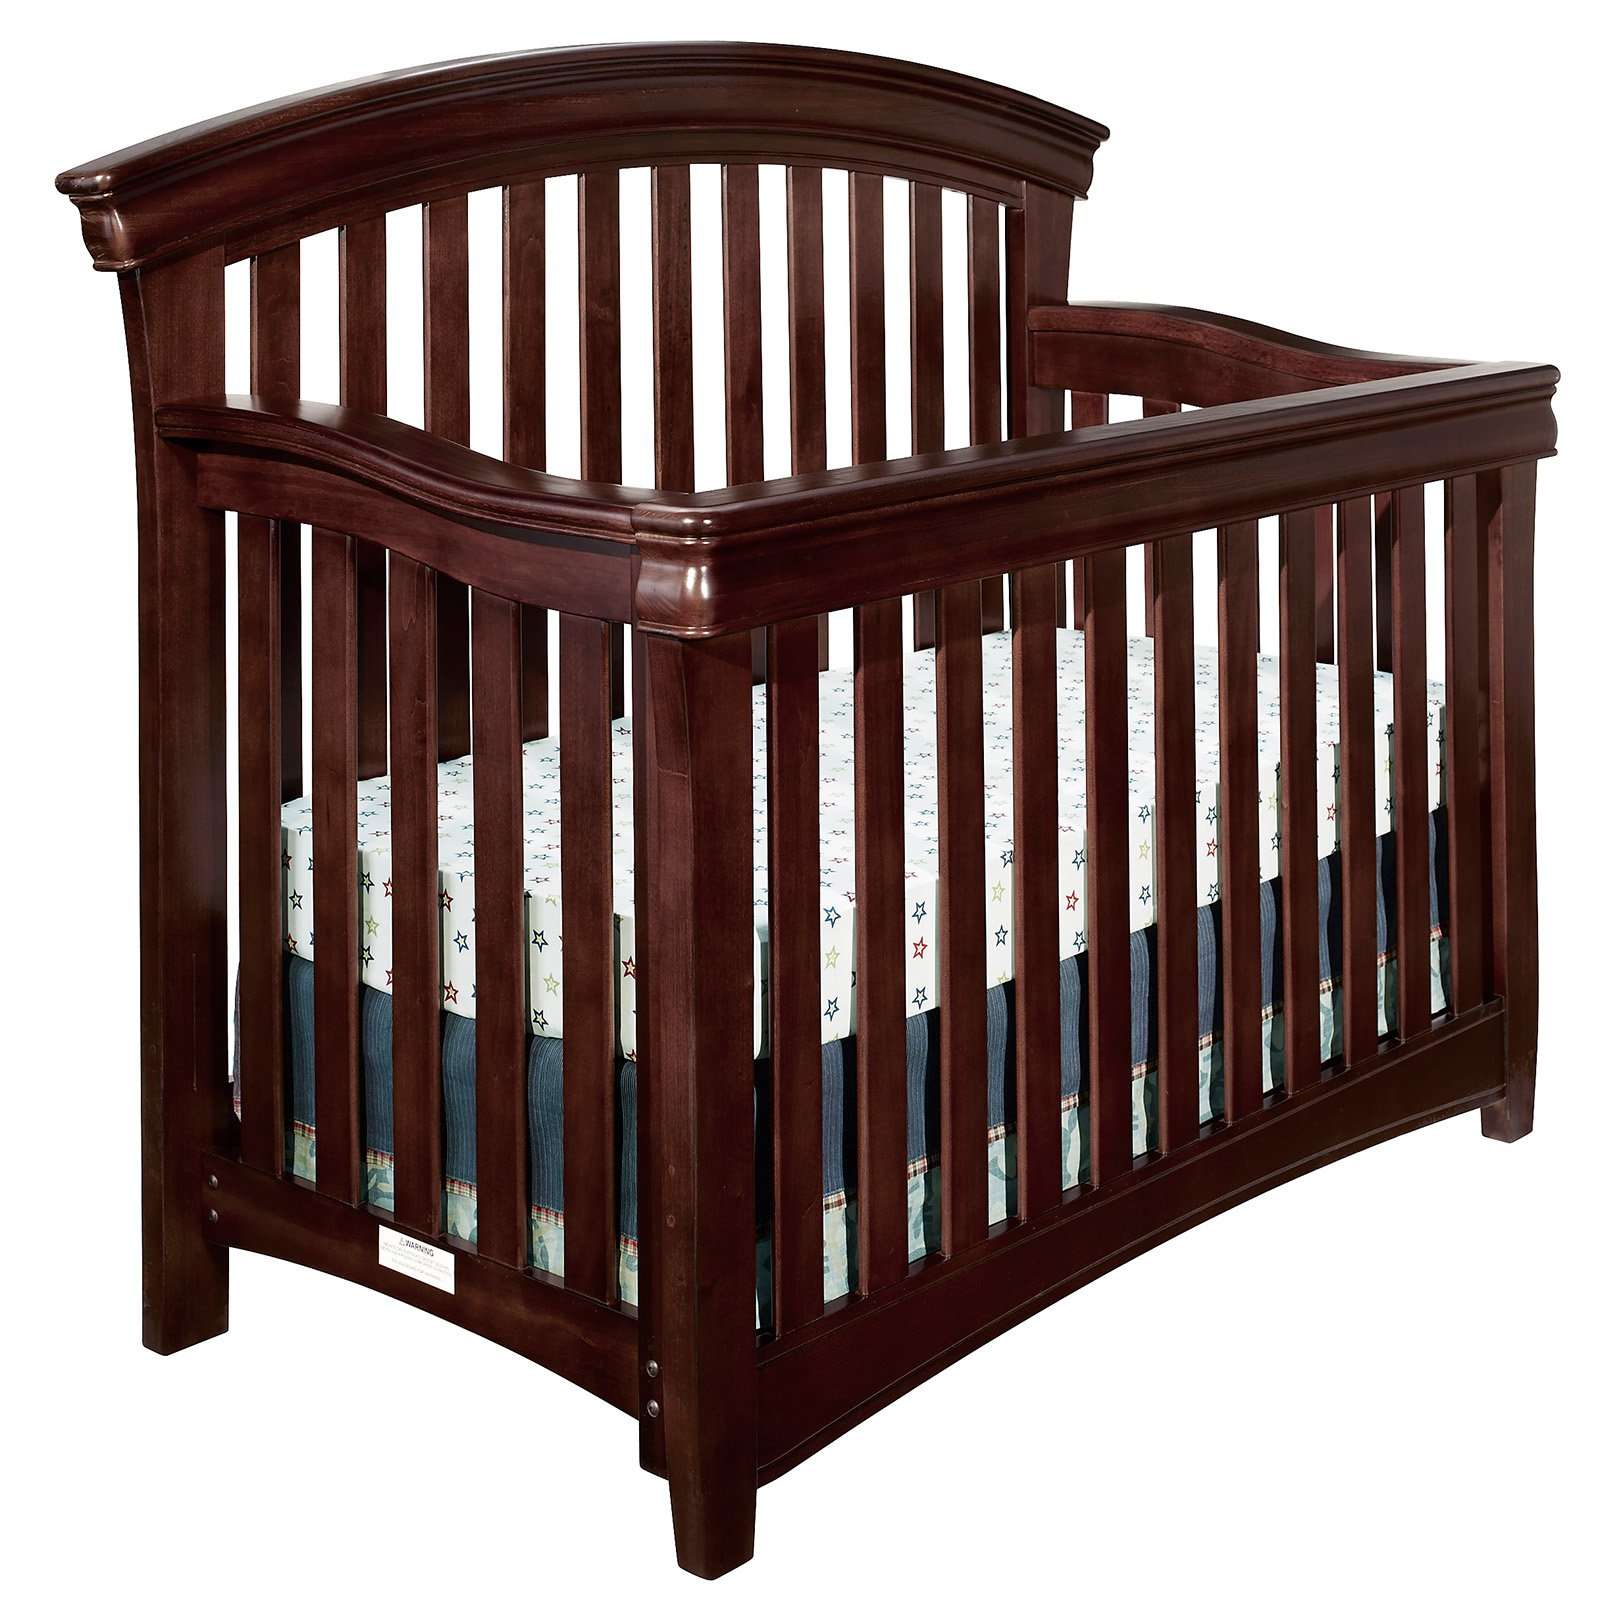 l furniture new crib cribs convertible elegant witsolutcom jonesport baby view larger westwood